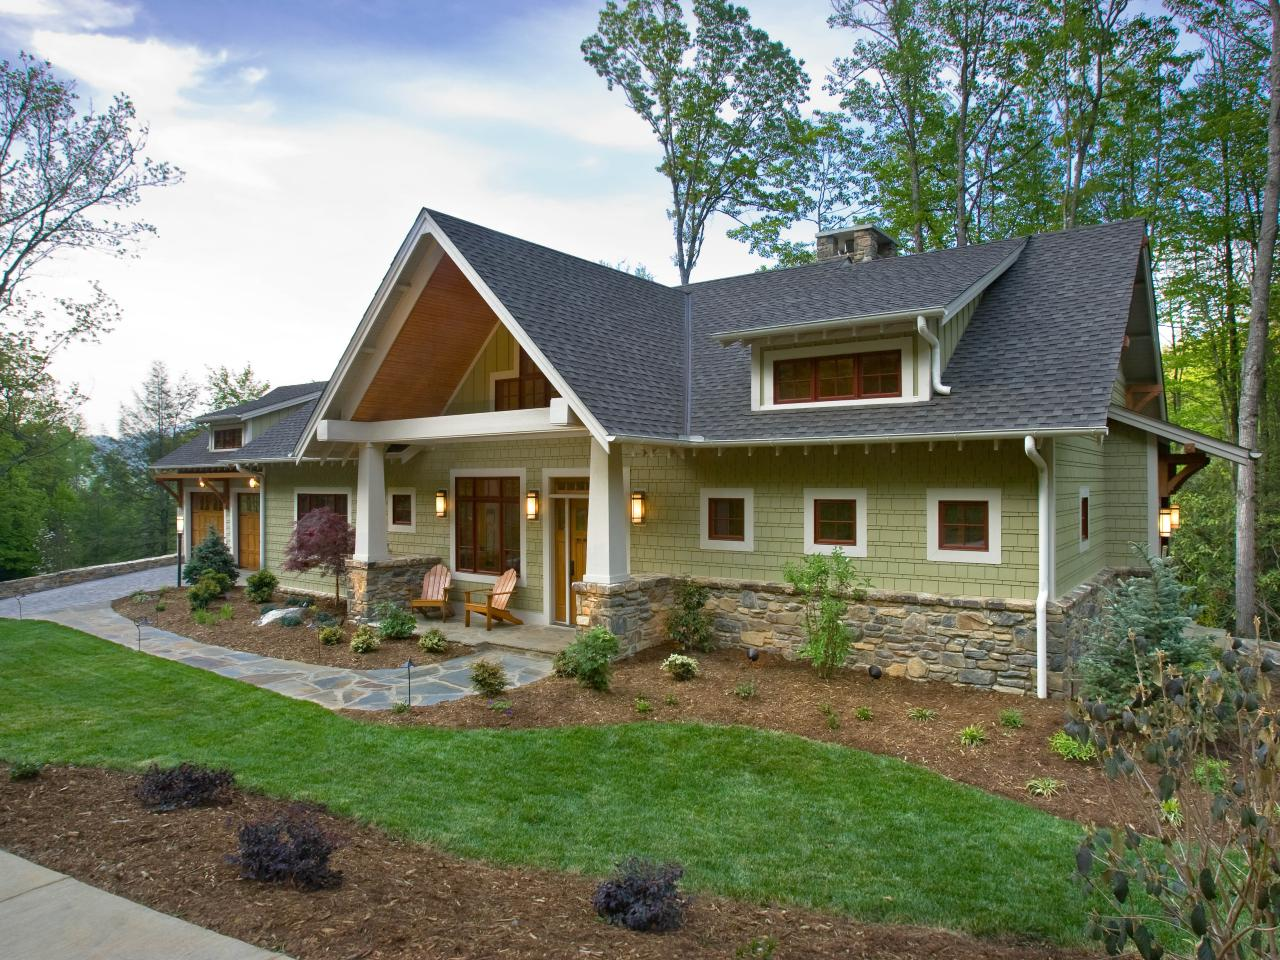 Olive craftsman exterior with stunning curb appeal hgtv for Prefab arts and crafts homes